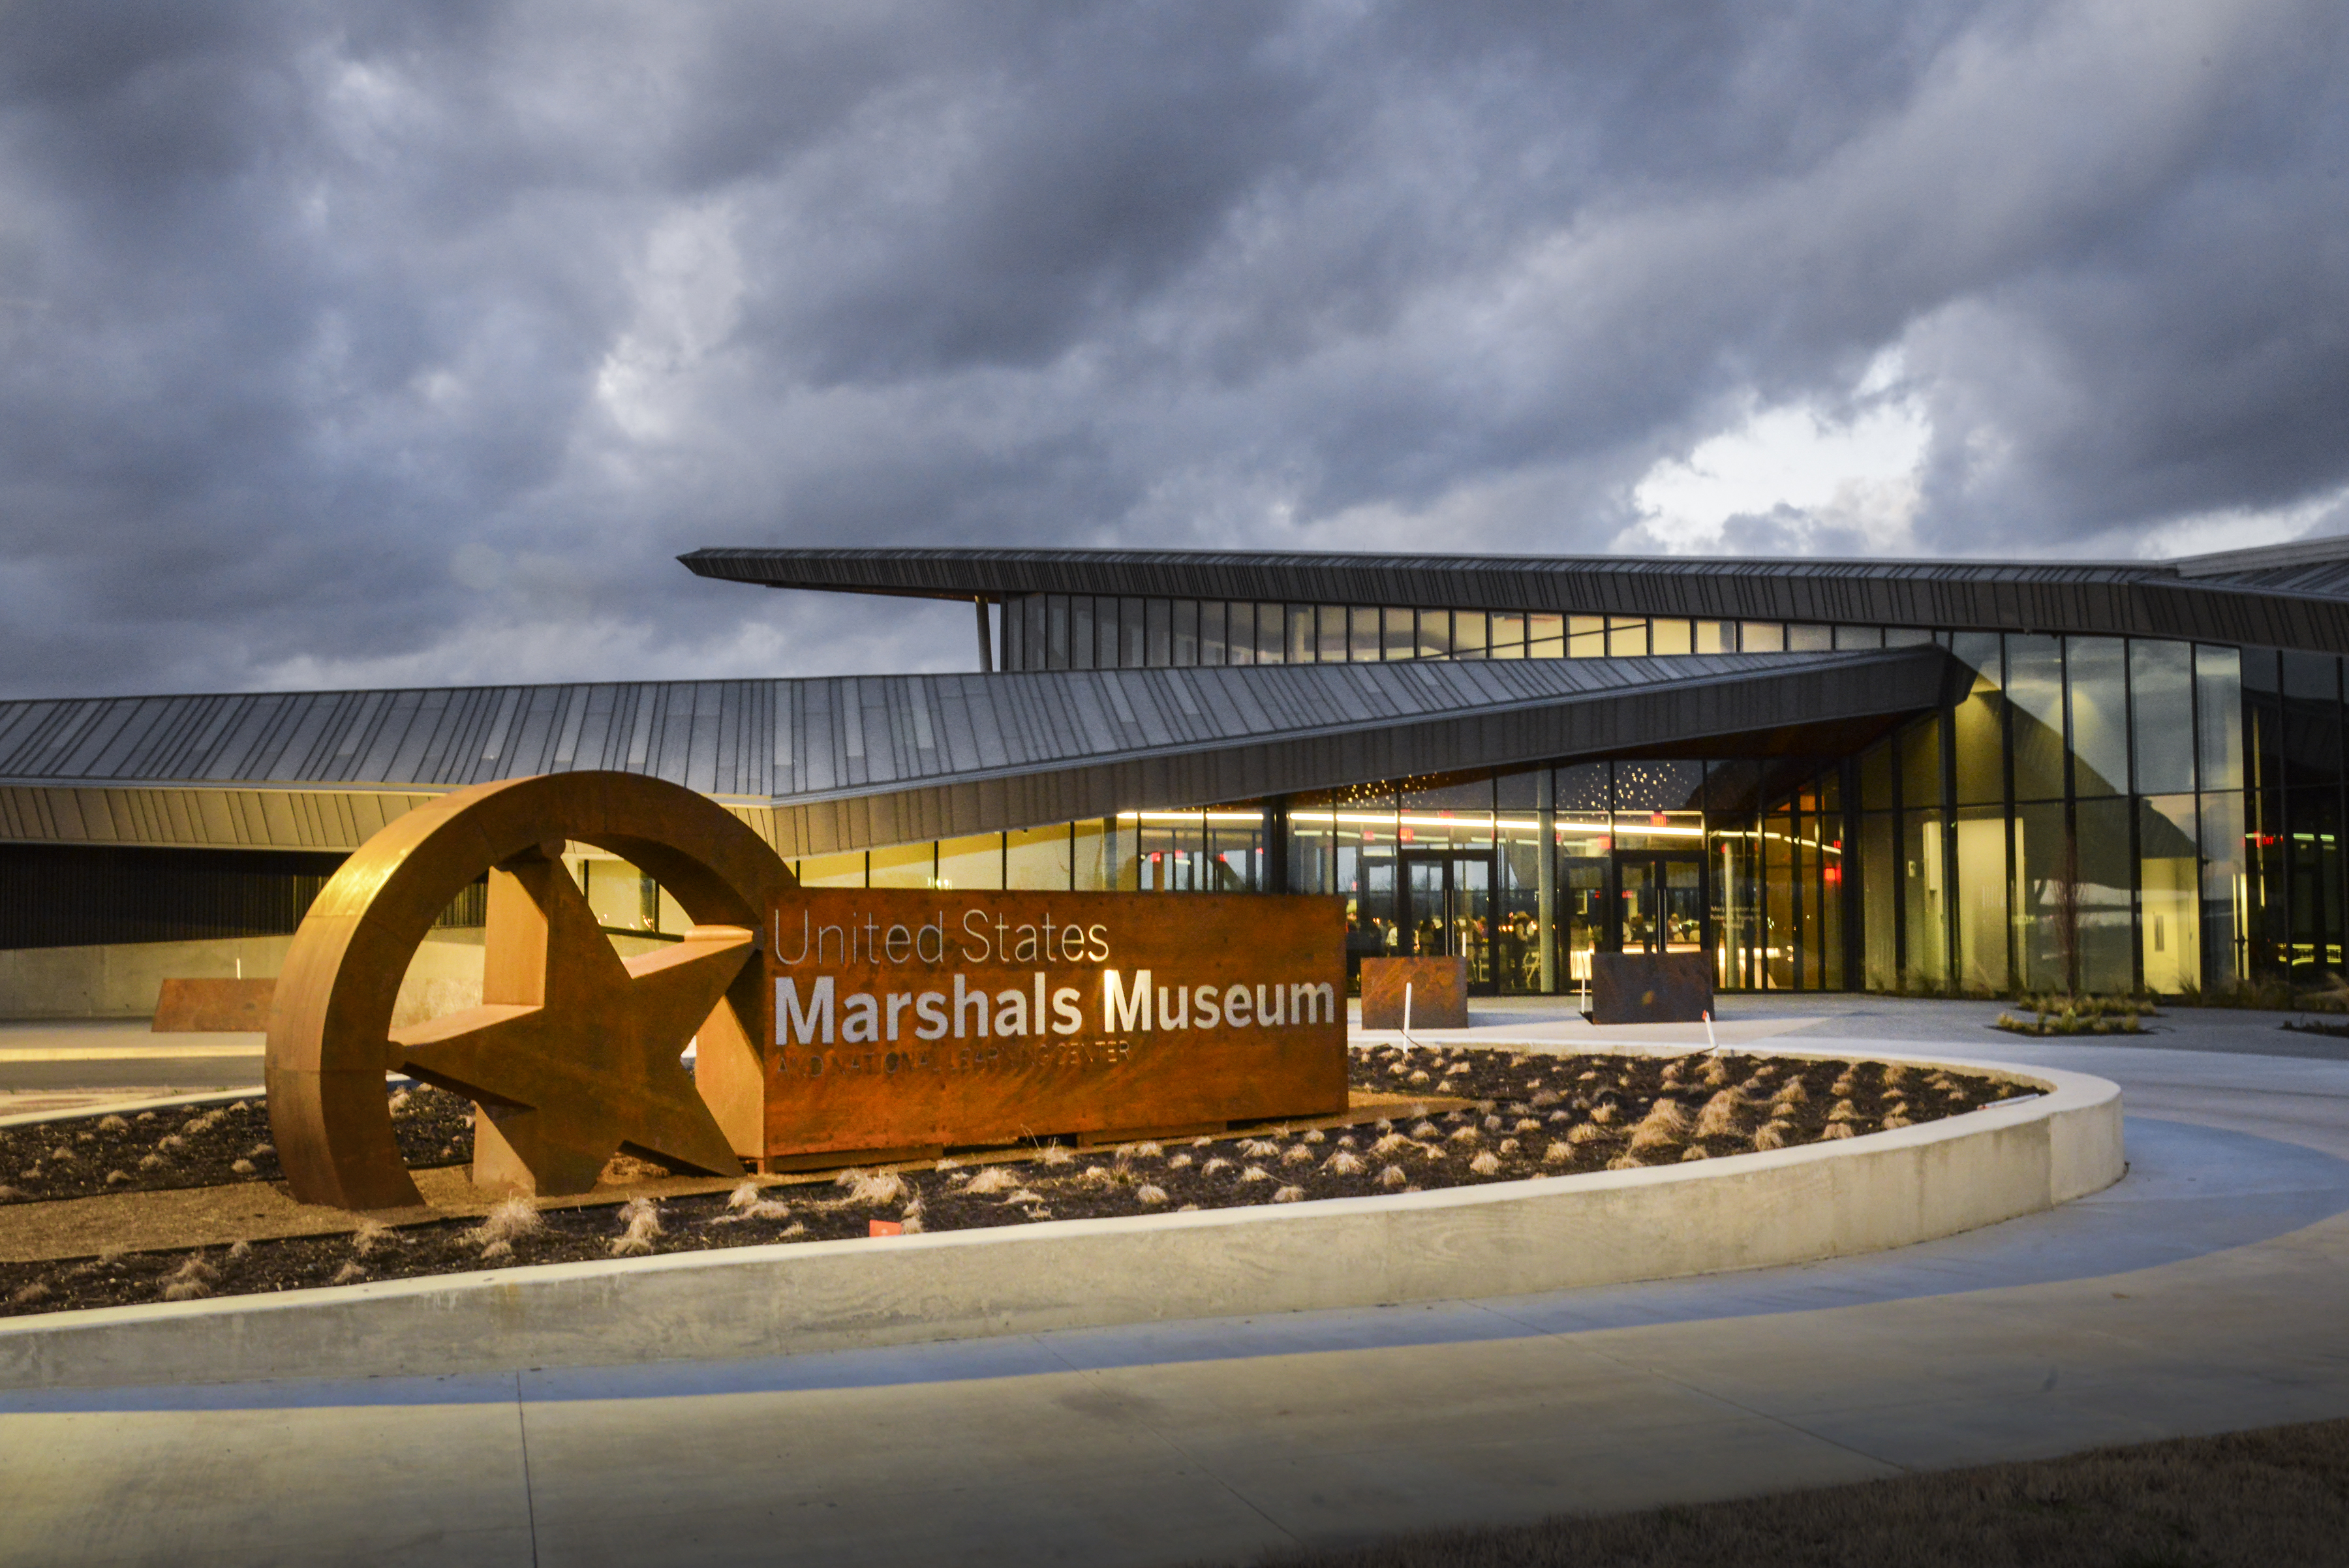 US Marshal's Museum in Fort Smith